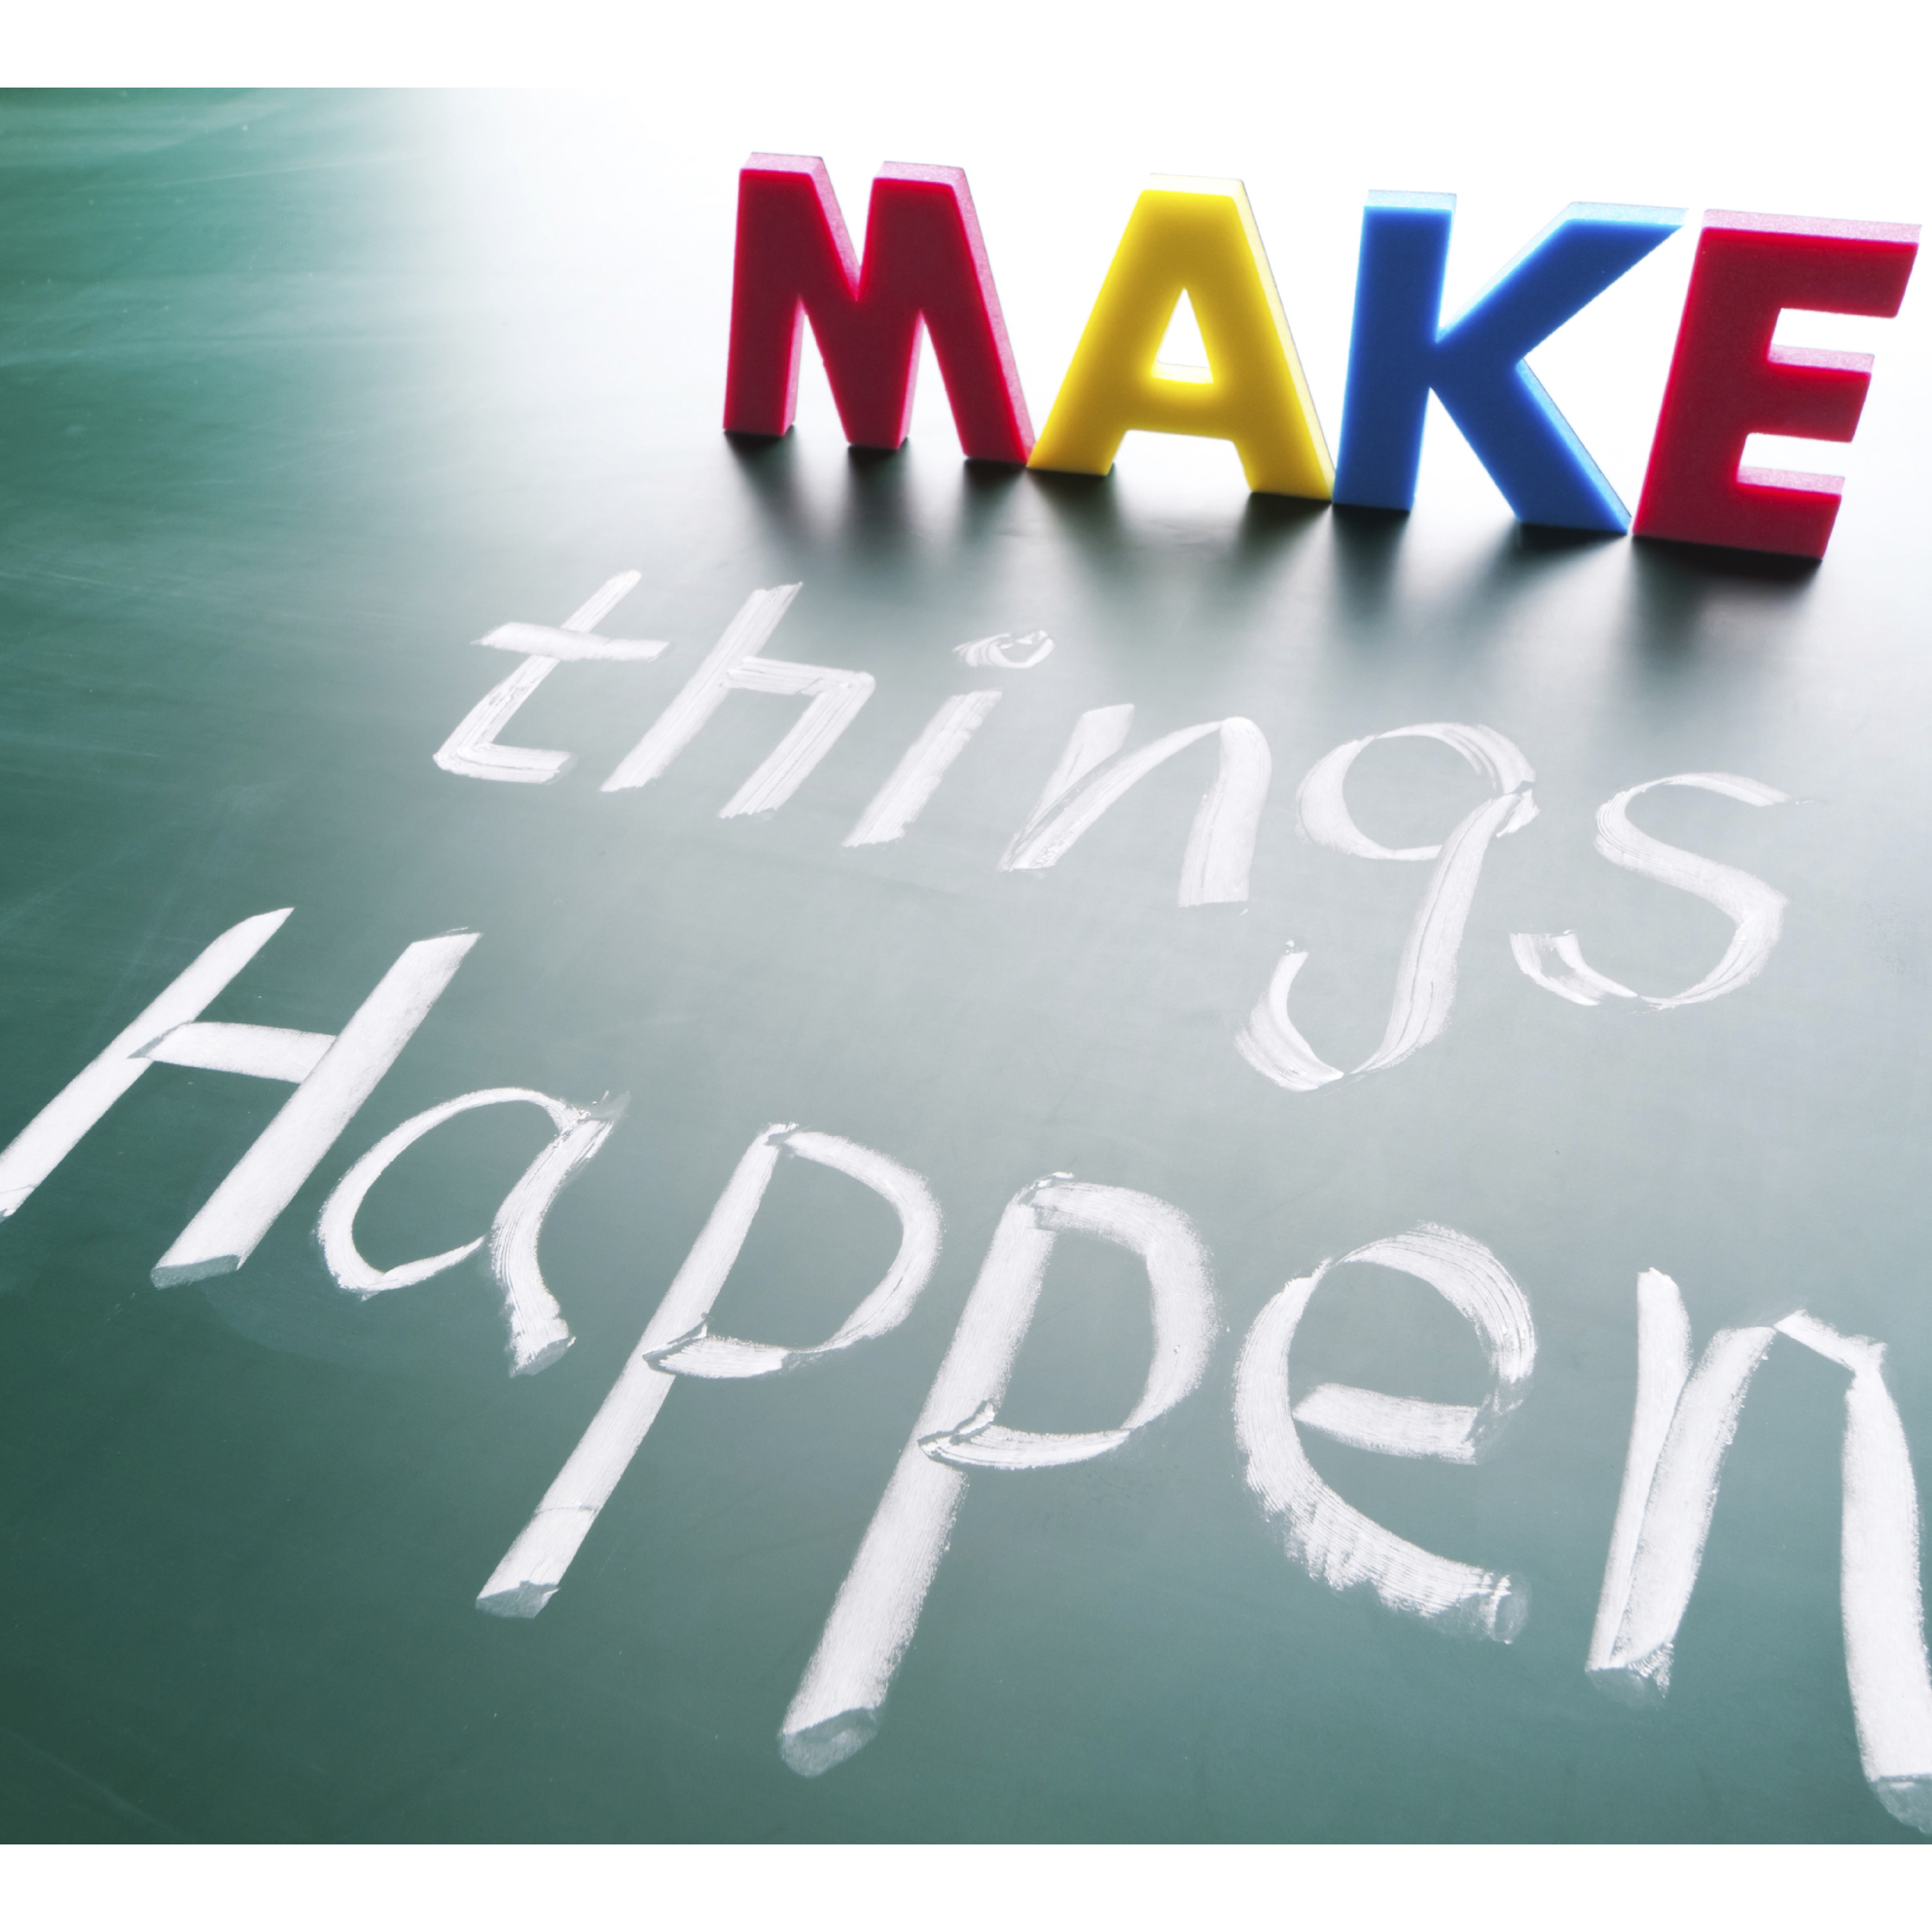 Make things happen image cropped